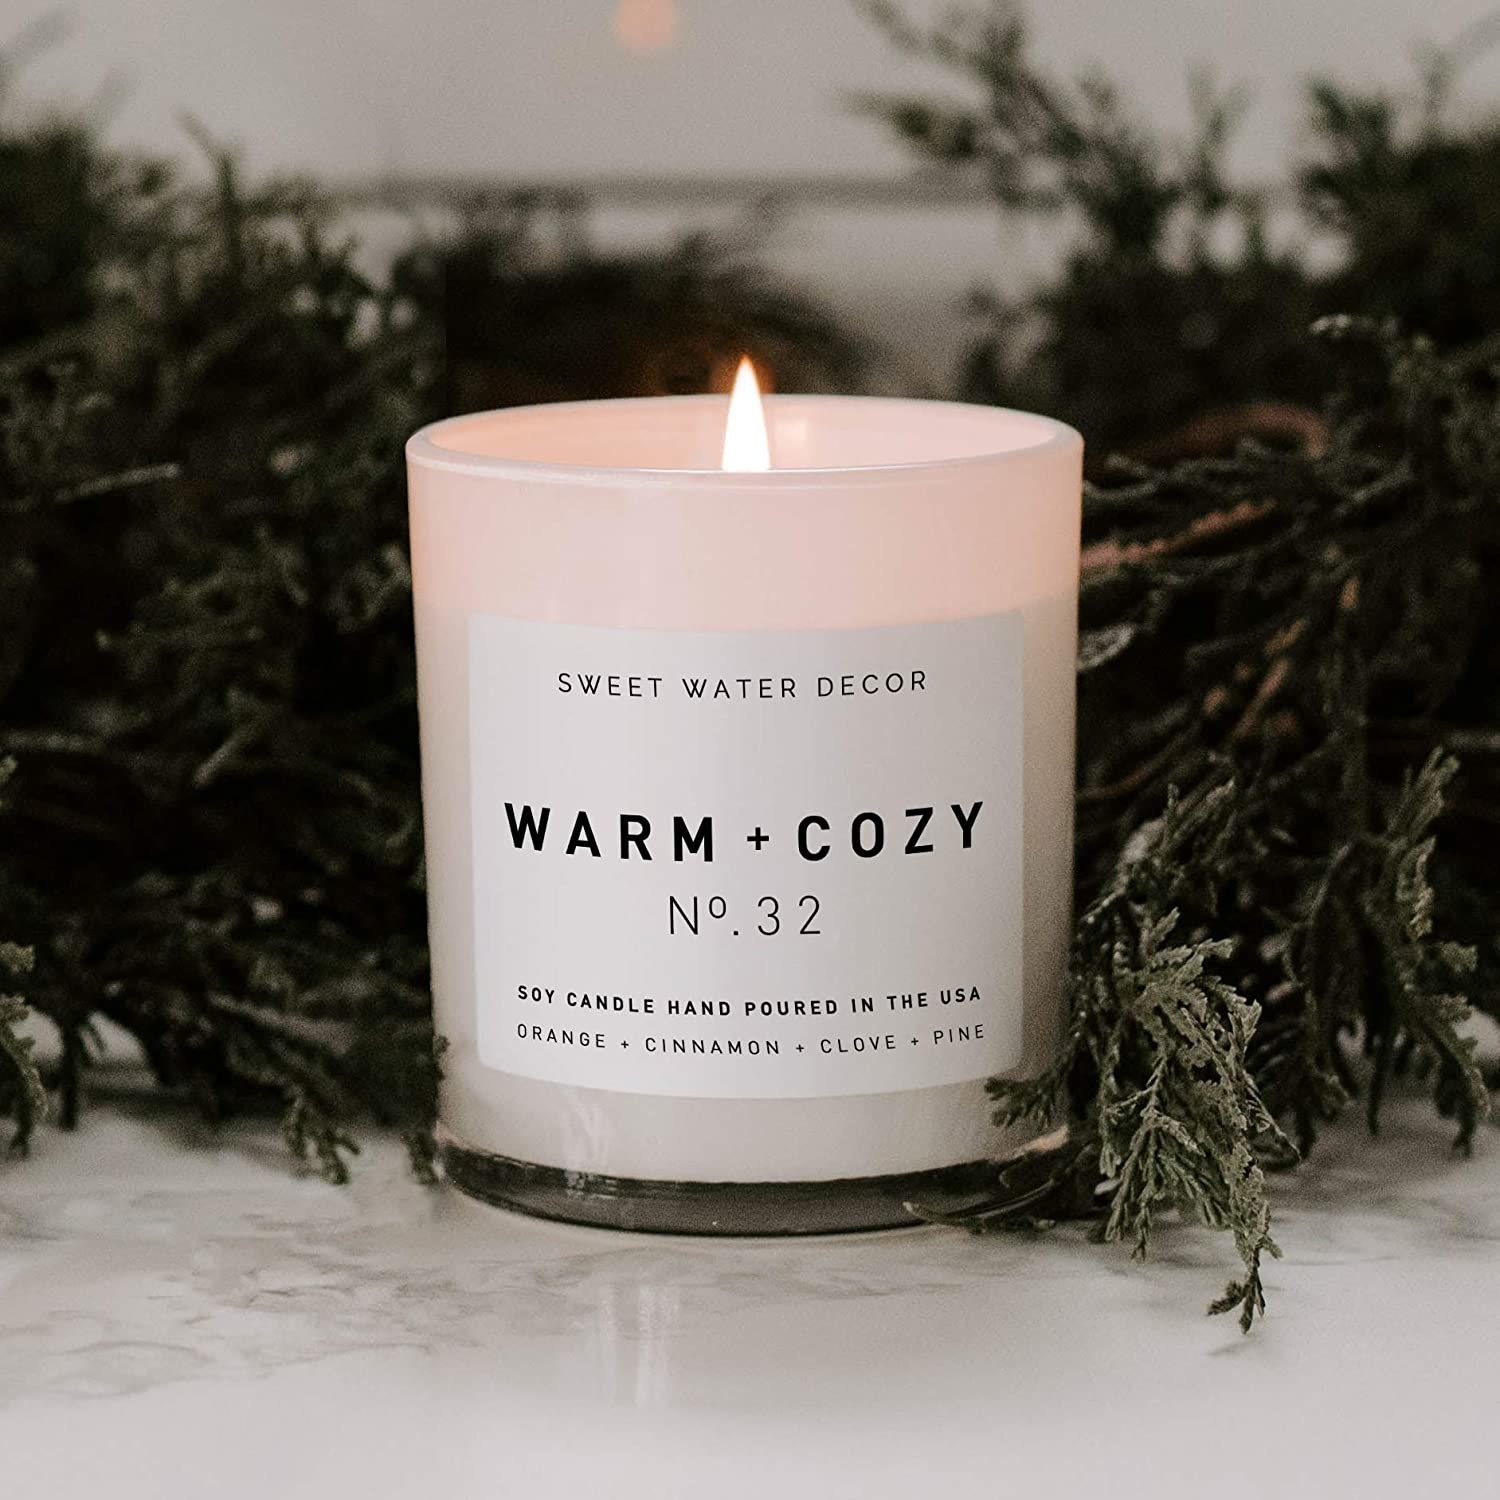 The Warm + Cozy candle